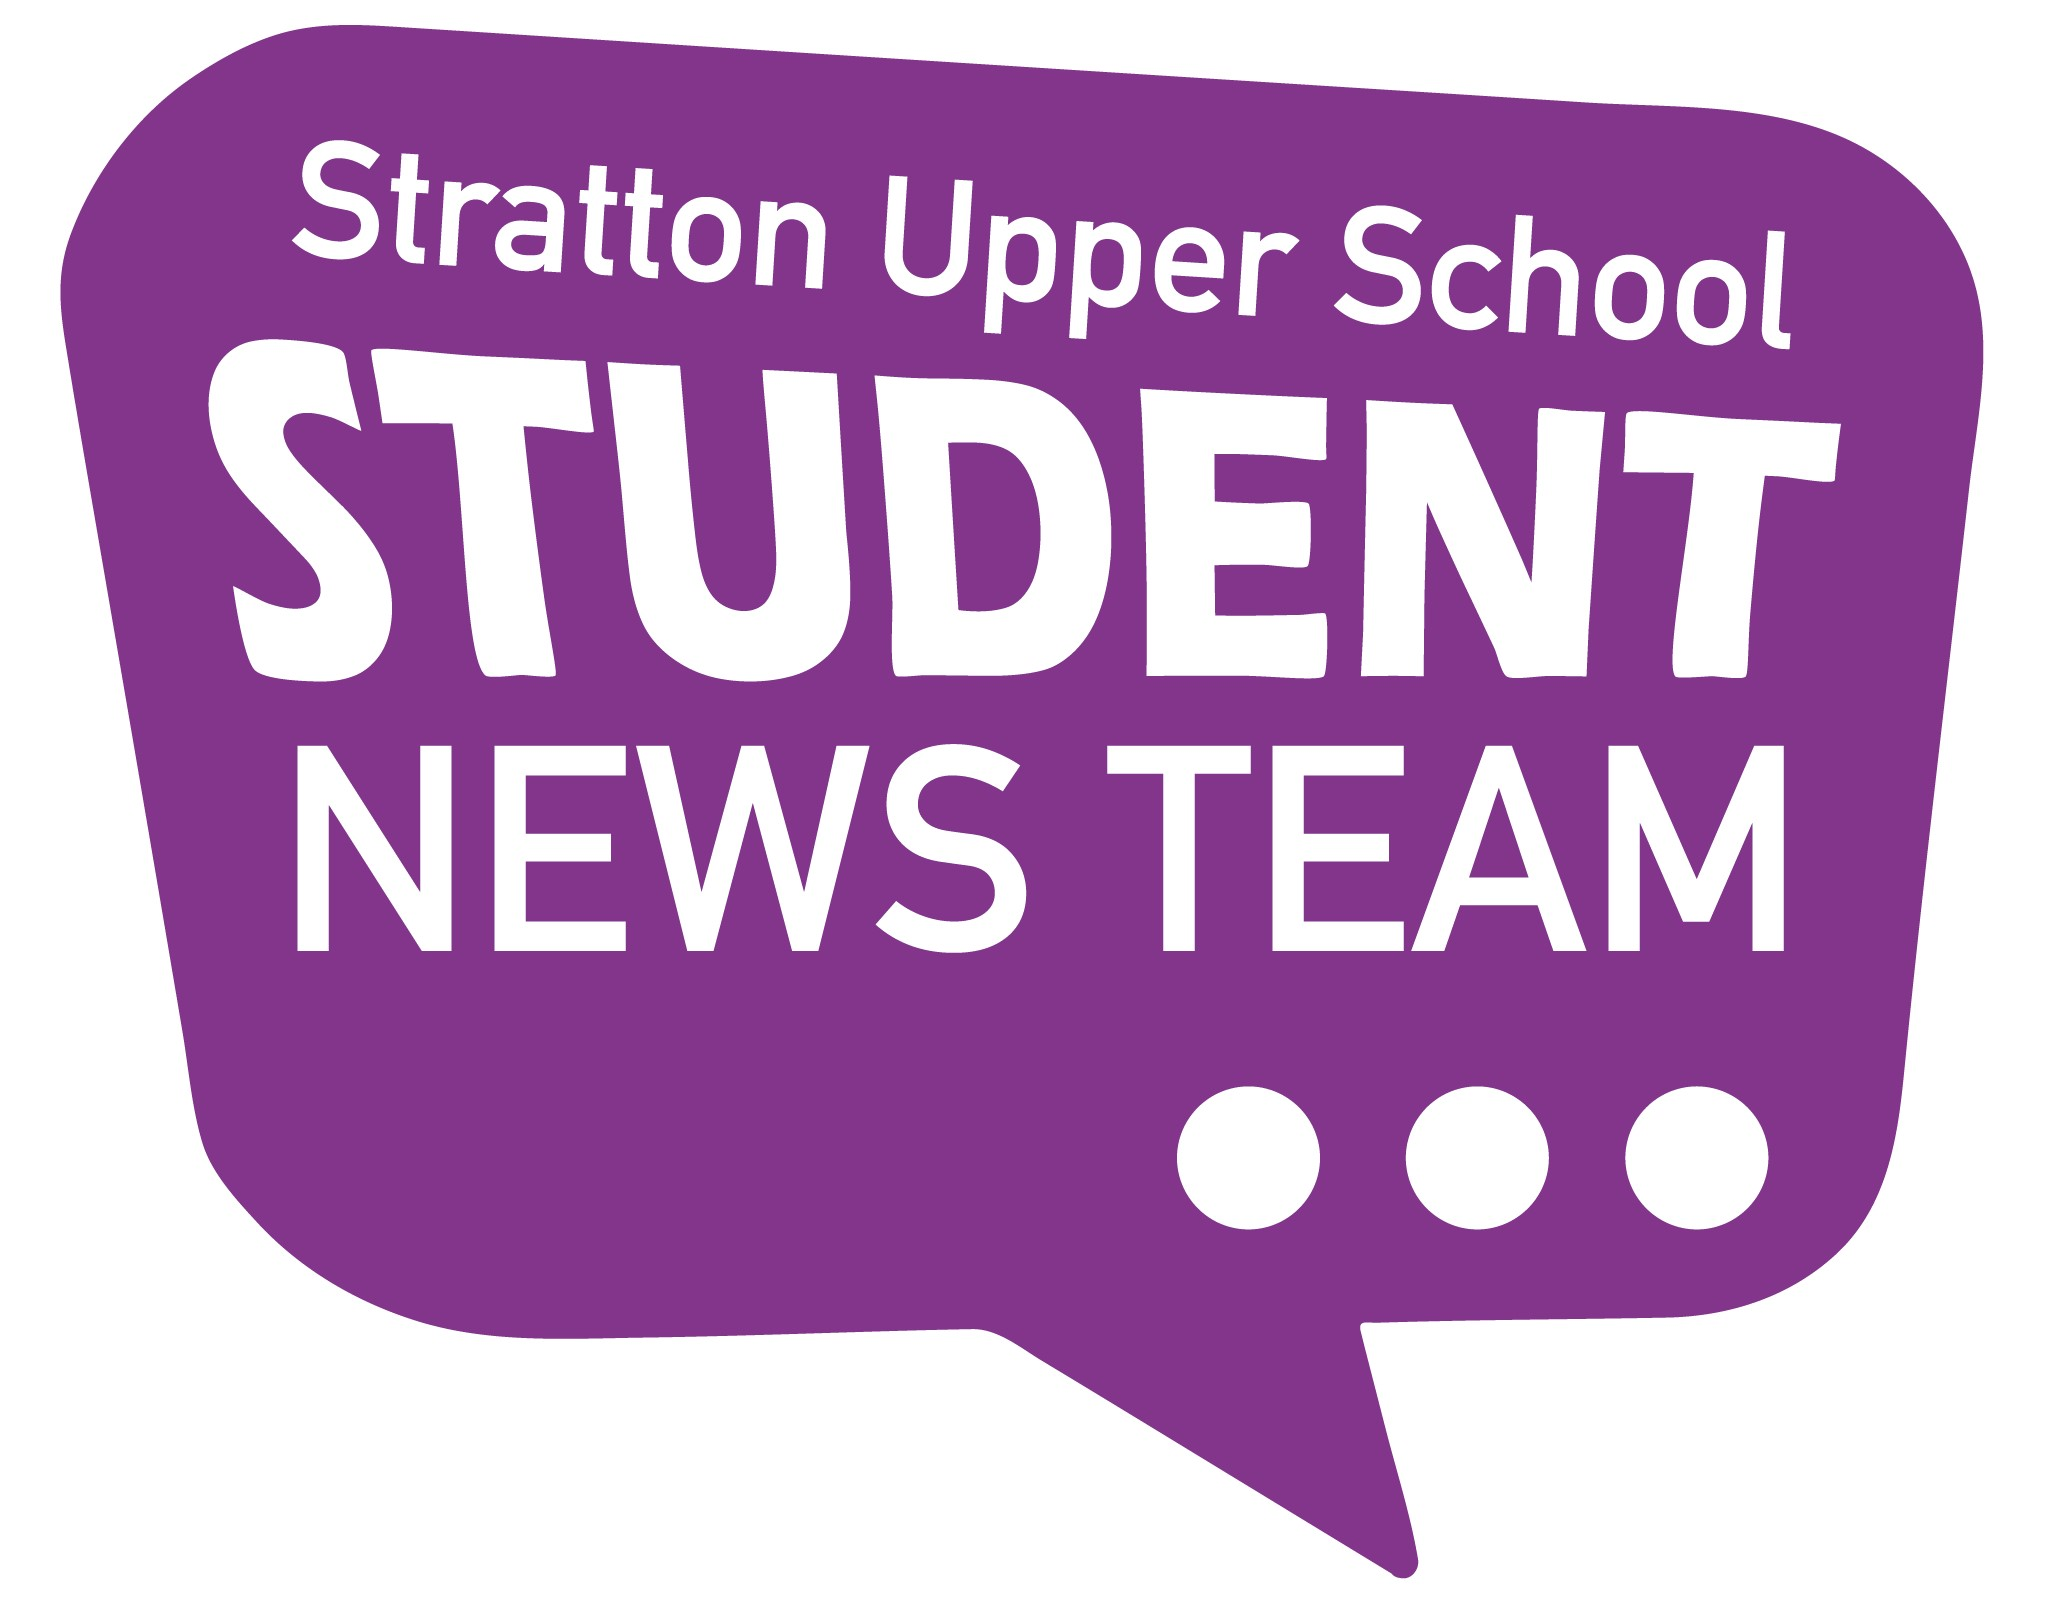 WANTED! Reporters, Presenters, Videographers and more for a new Student News Team